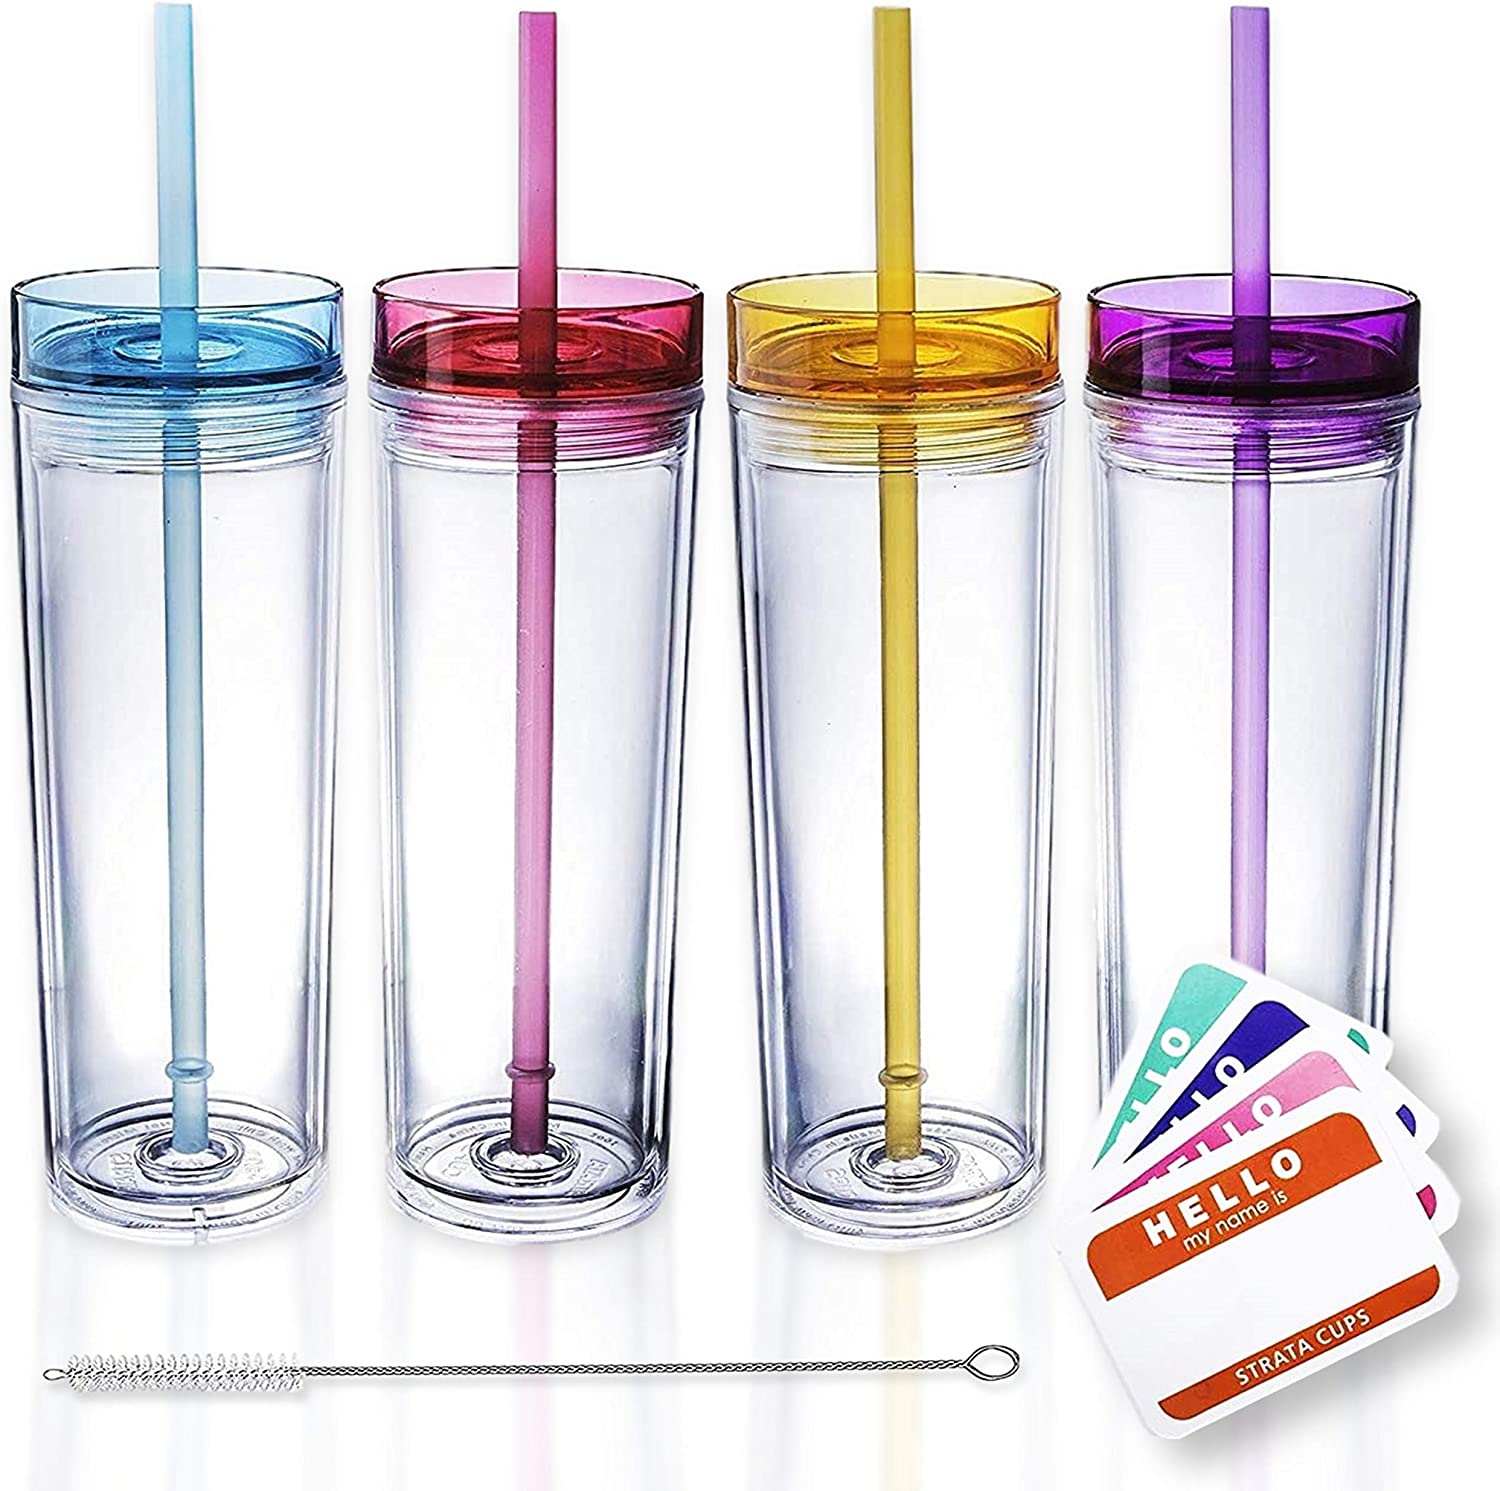 Free shipping on posting reviews SKINNY Courier shipping free TUMBLERS 4 Colored Acrylic with Tumblers Lids Straws and